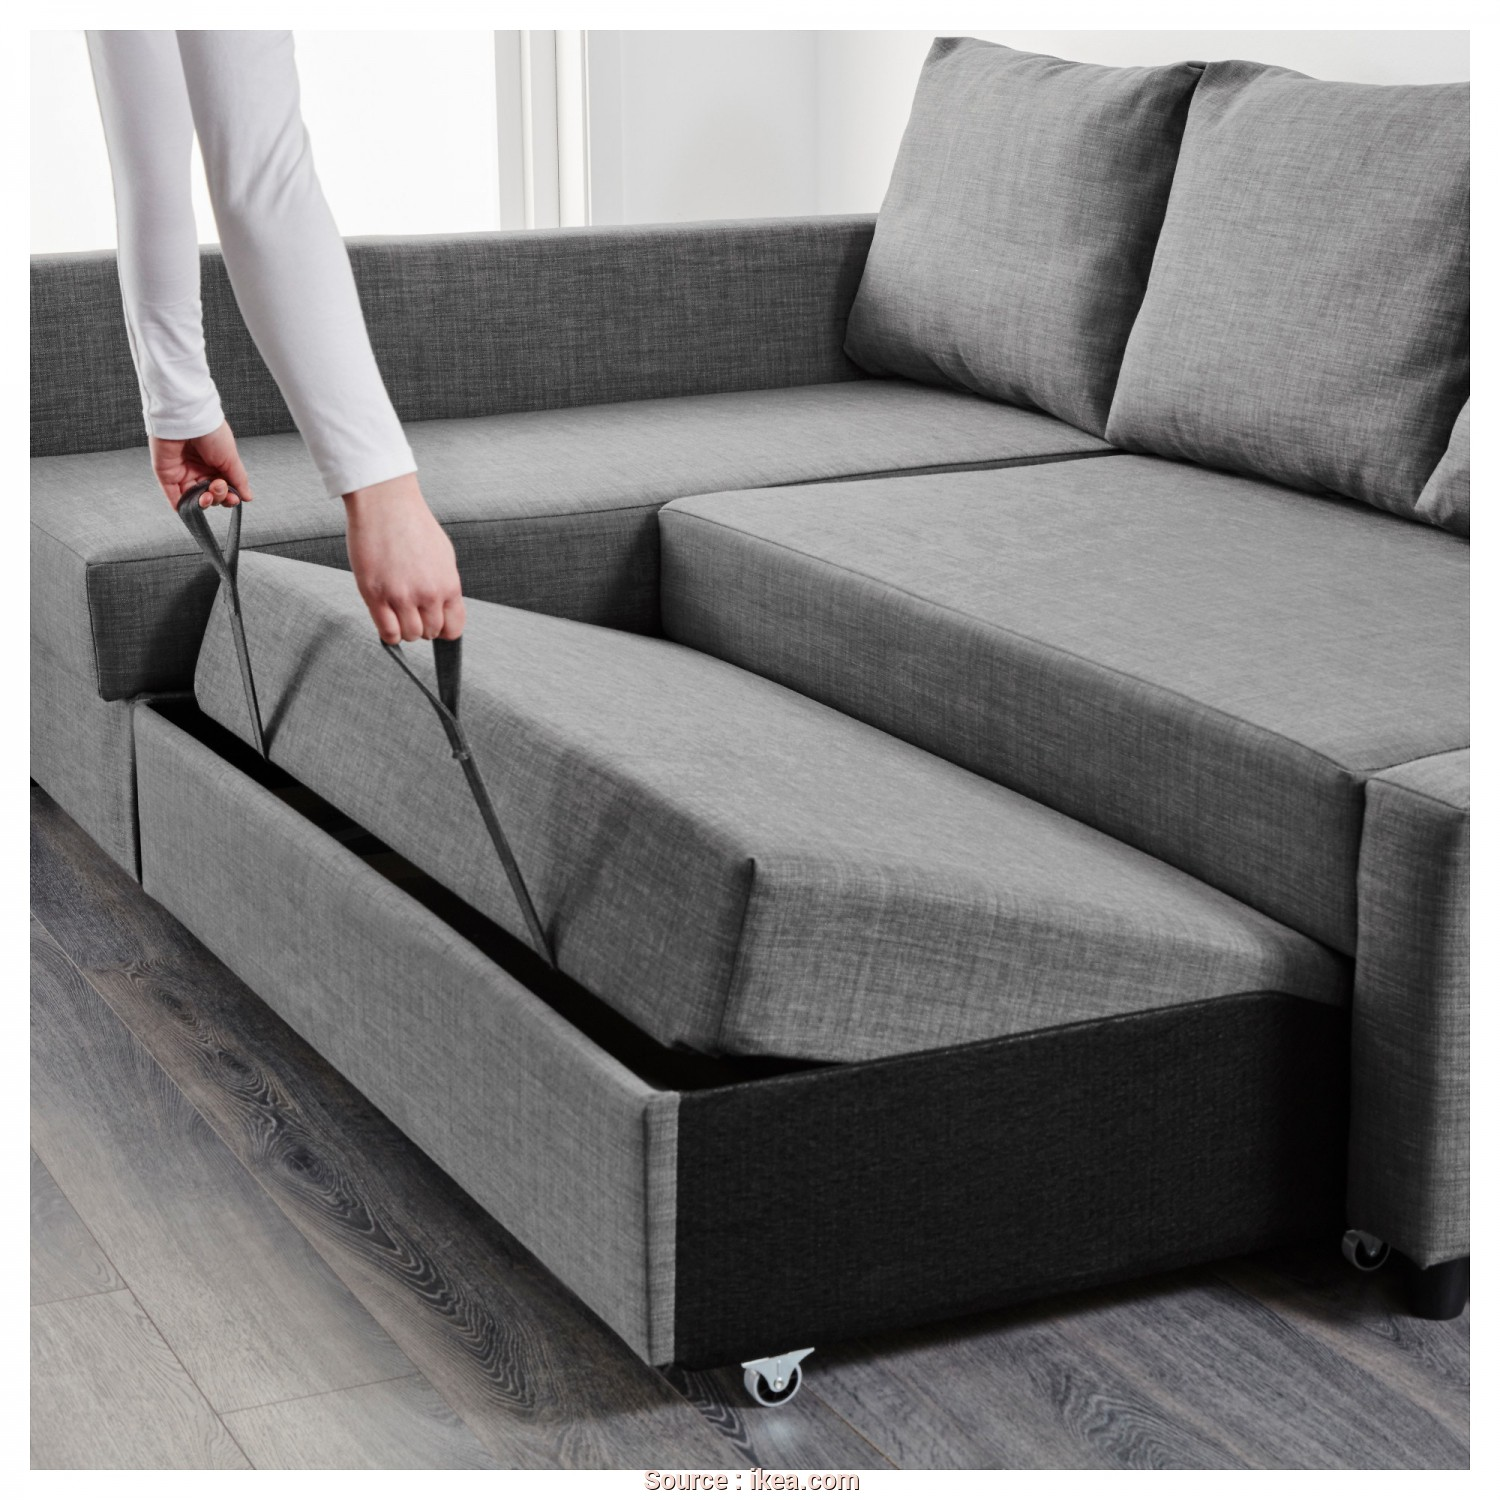 Futon Ikea Catalogo, Freddo IKEA FRIHETEN Corner Sofa-Bed With Storage Sofa, Chaise Longue, Double, In